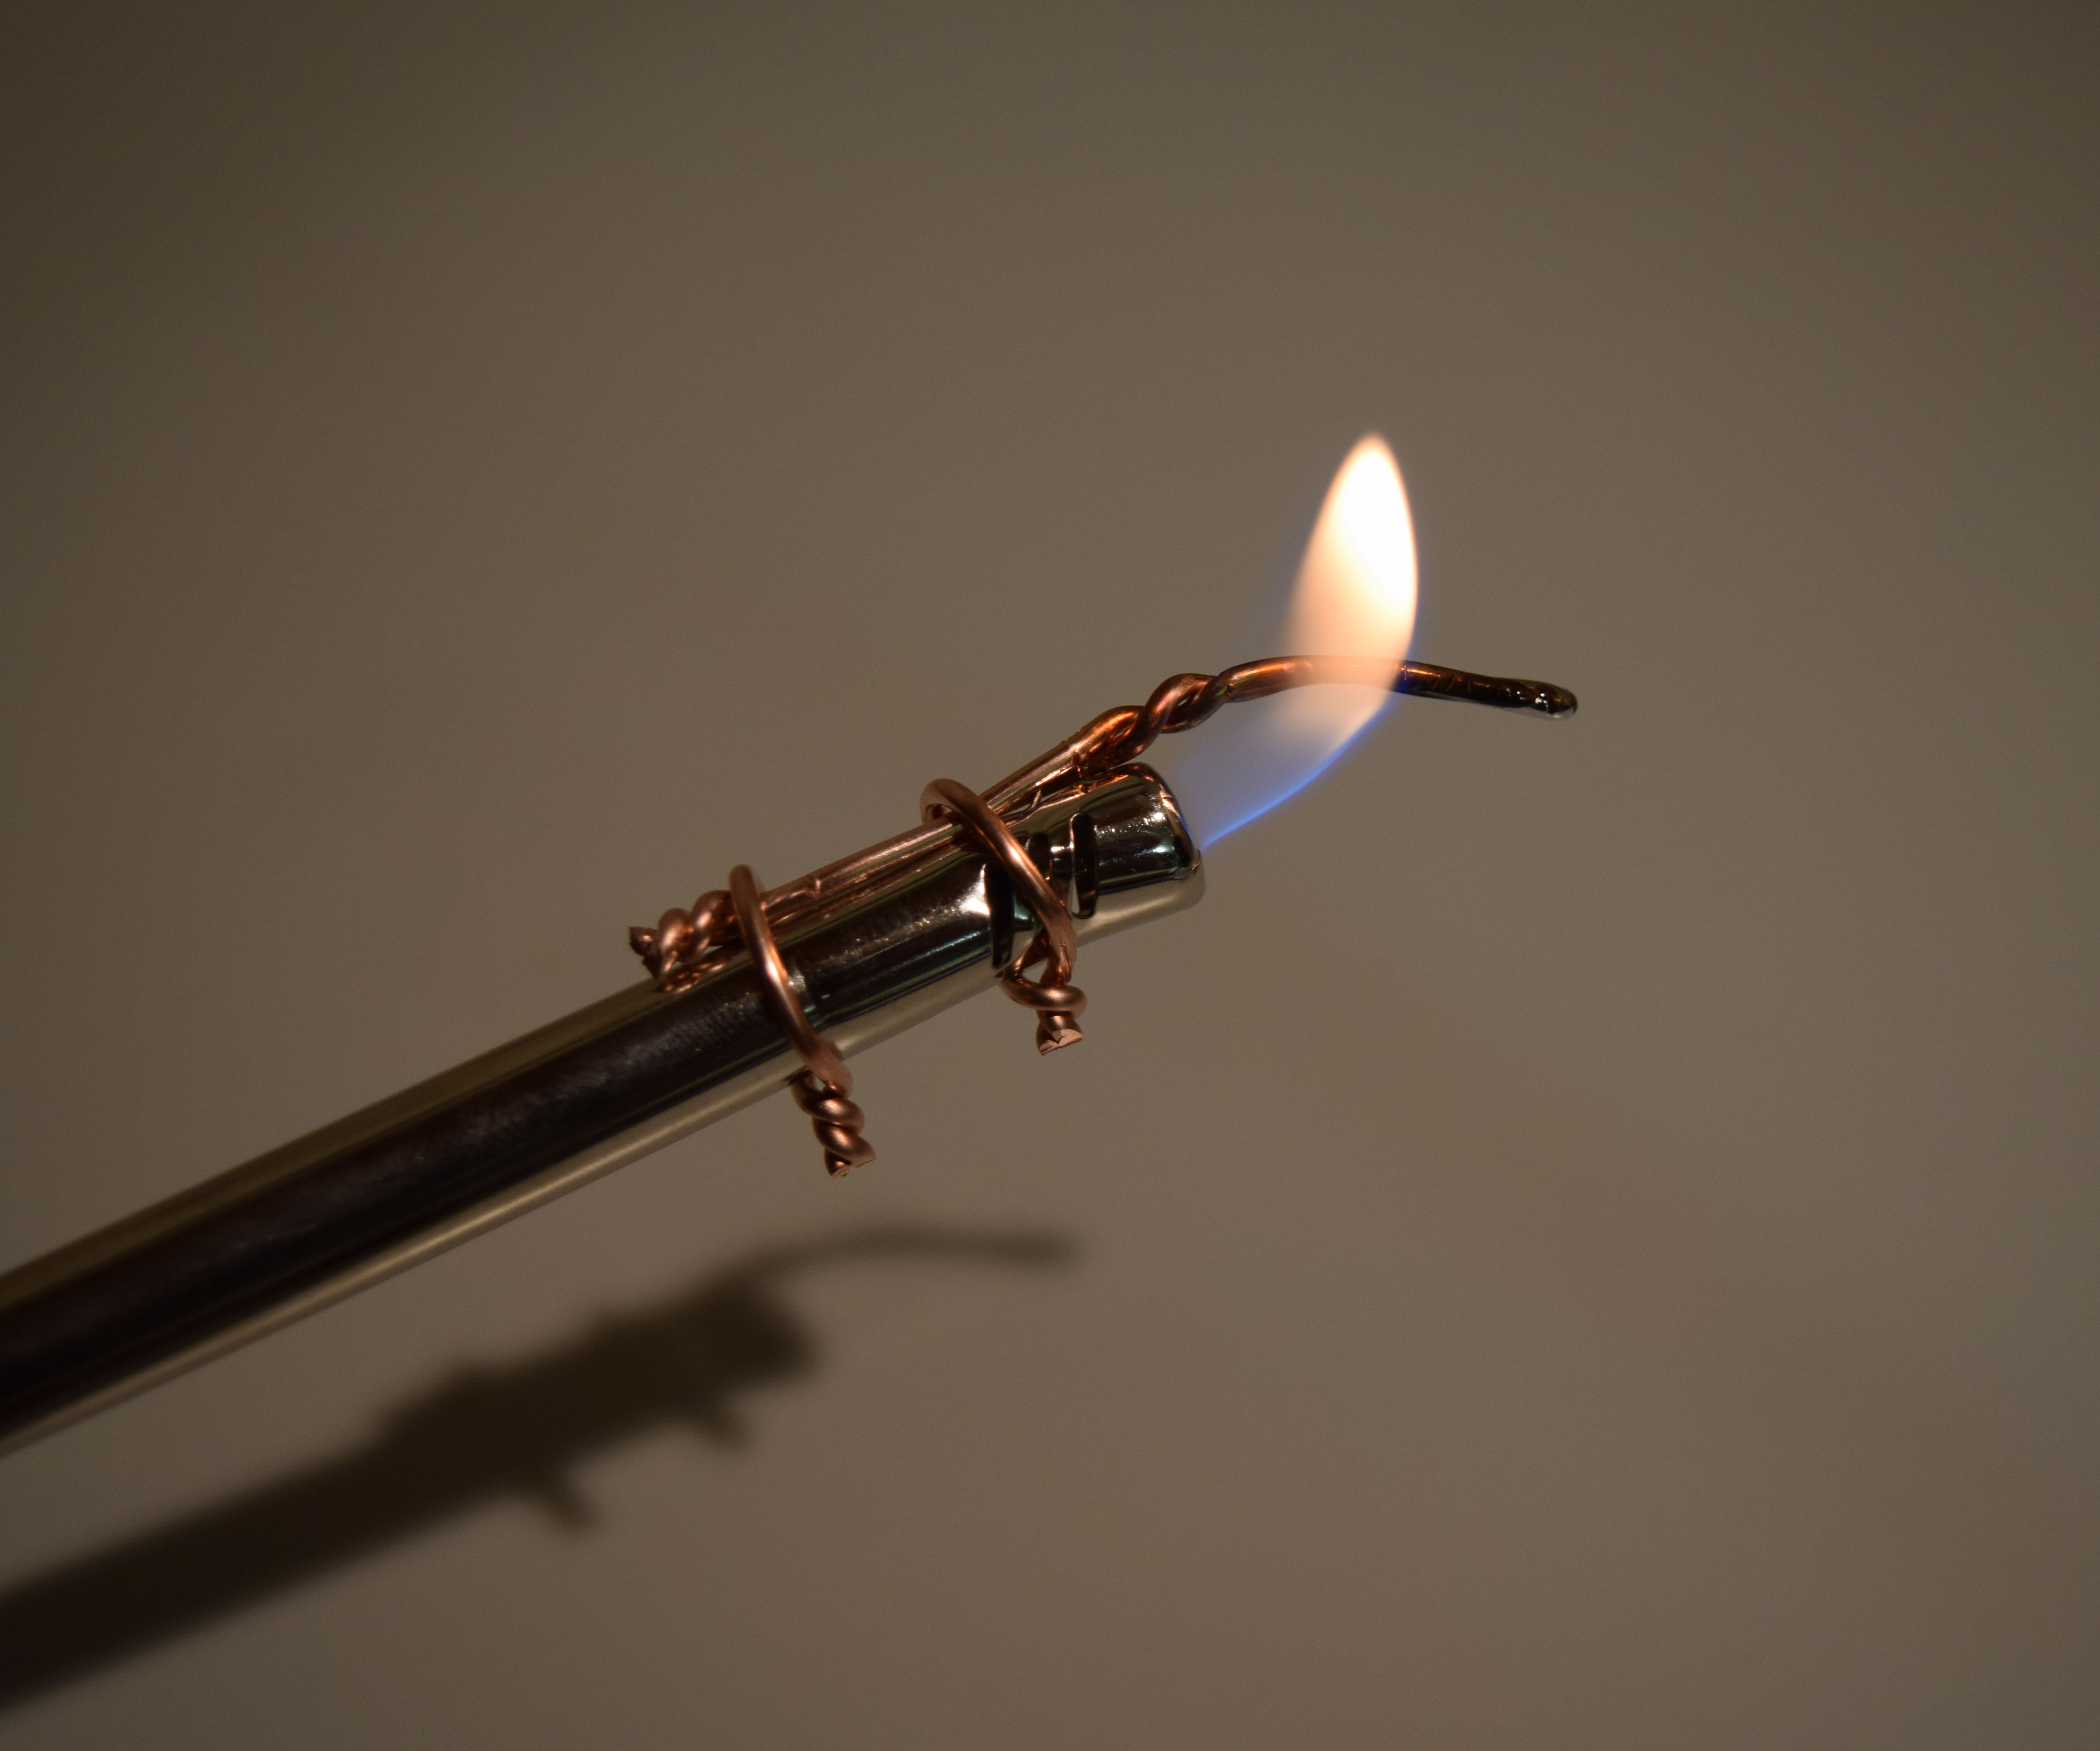 Make a Soldering Iron Out of a Lighter